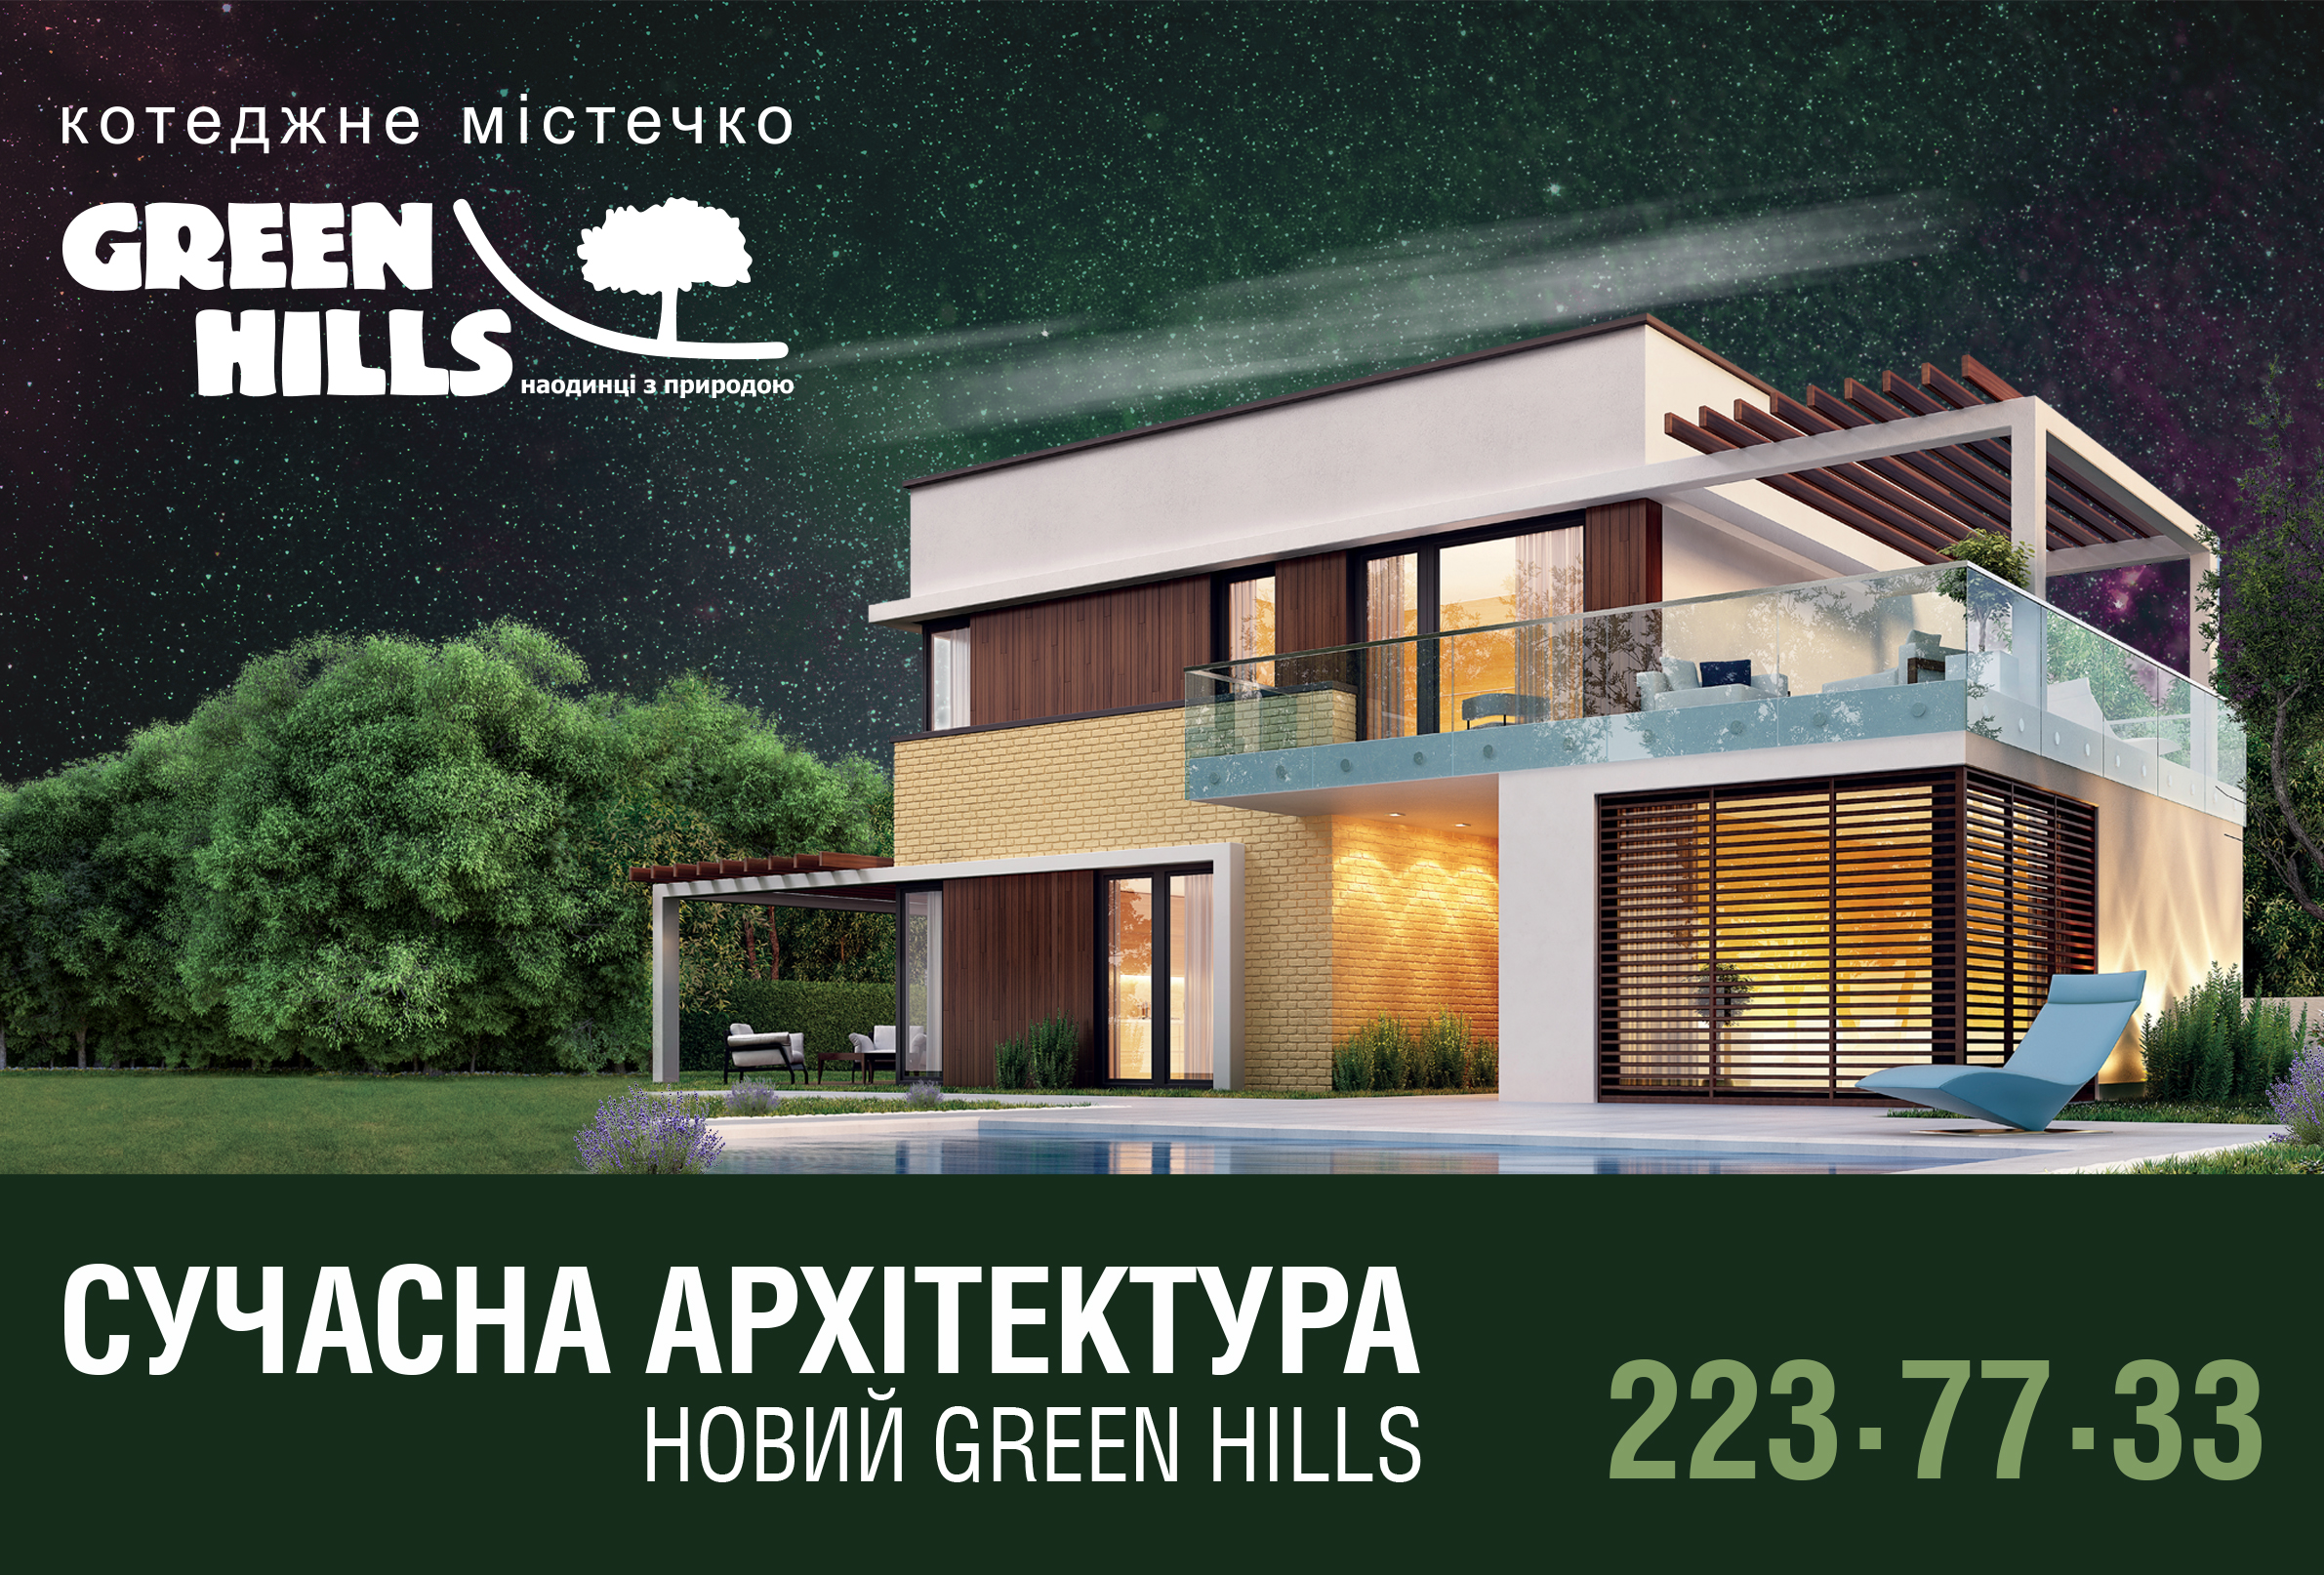 New part of Green Hills cottage community: modern style houses!